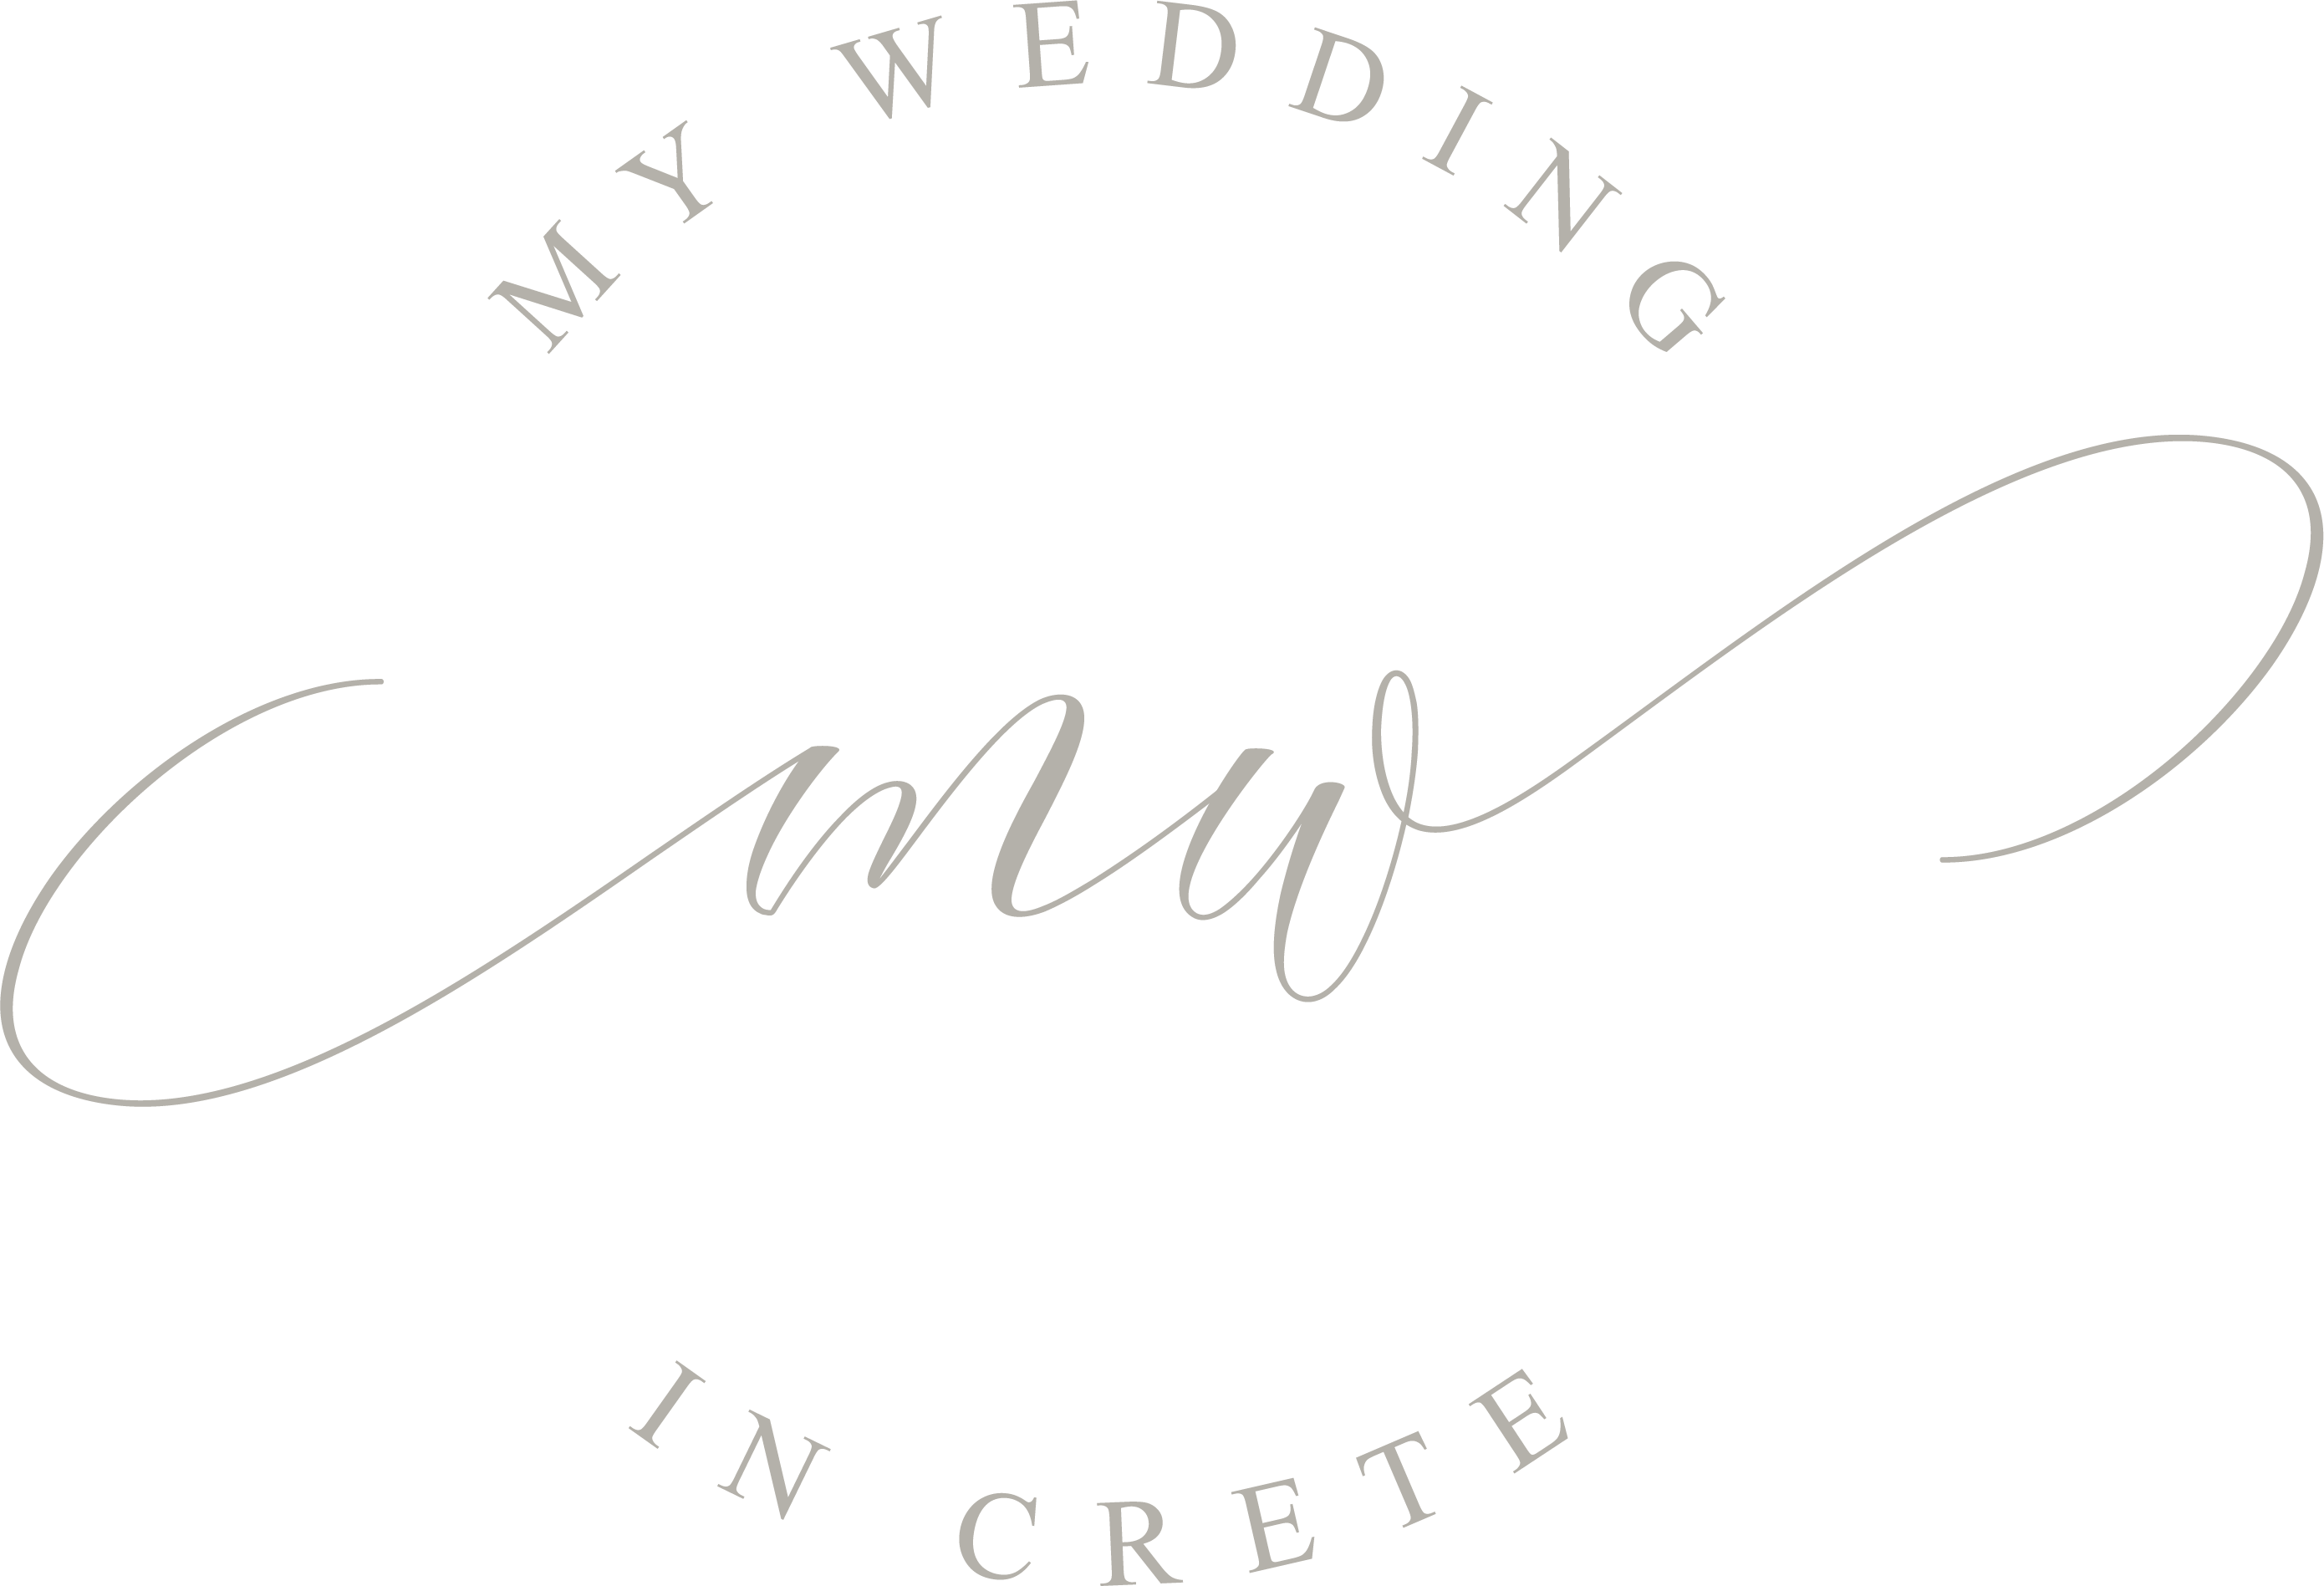 MyWeddingInCrete